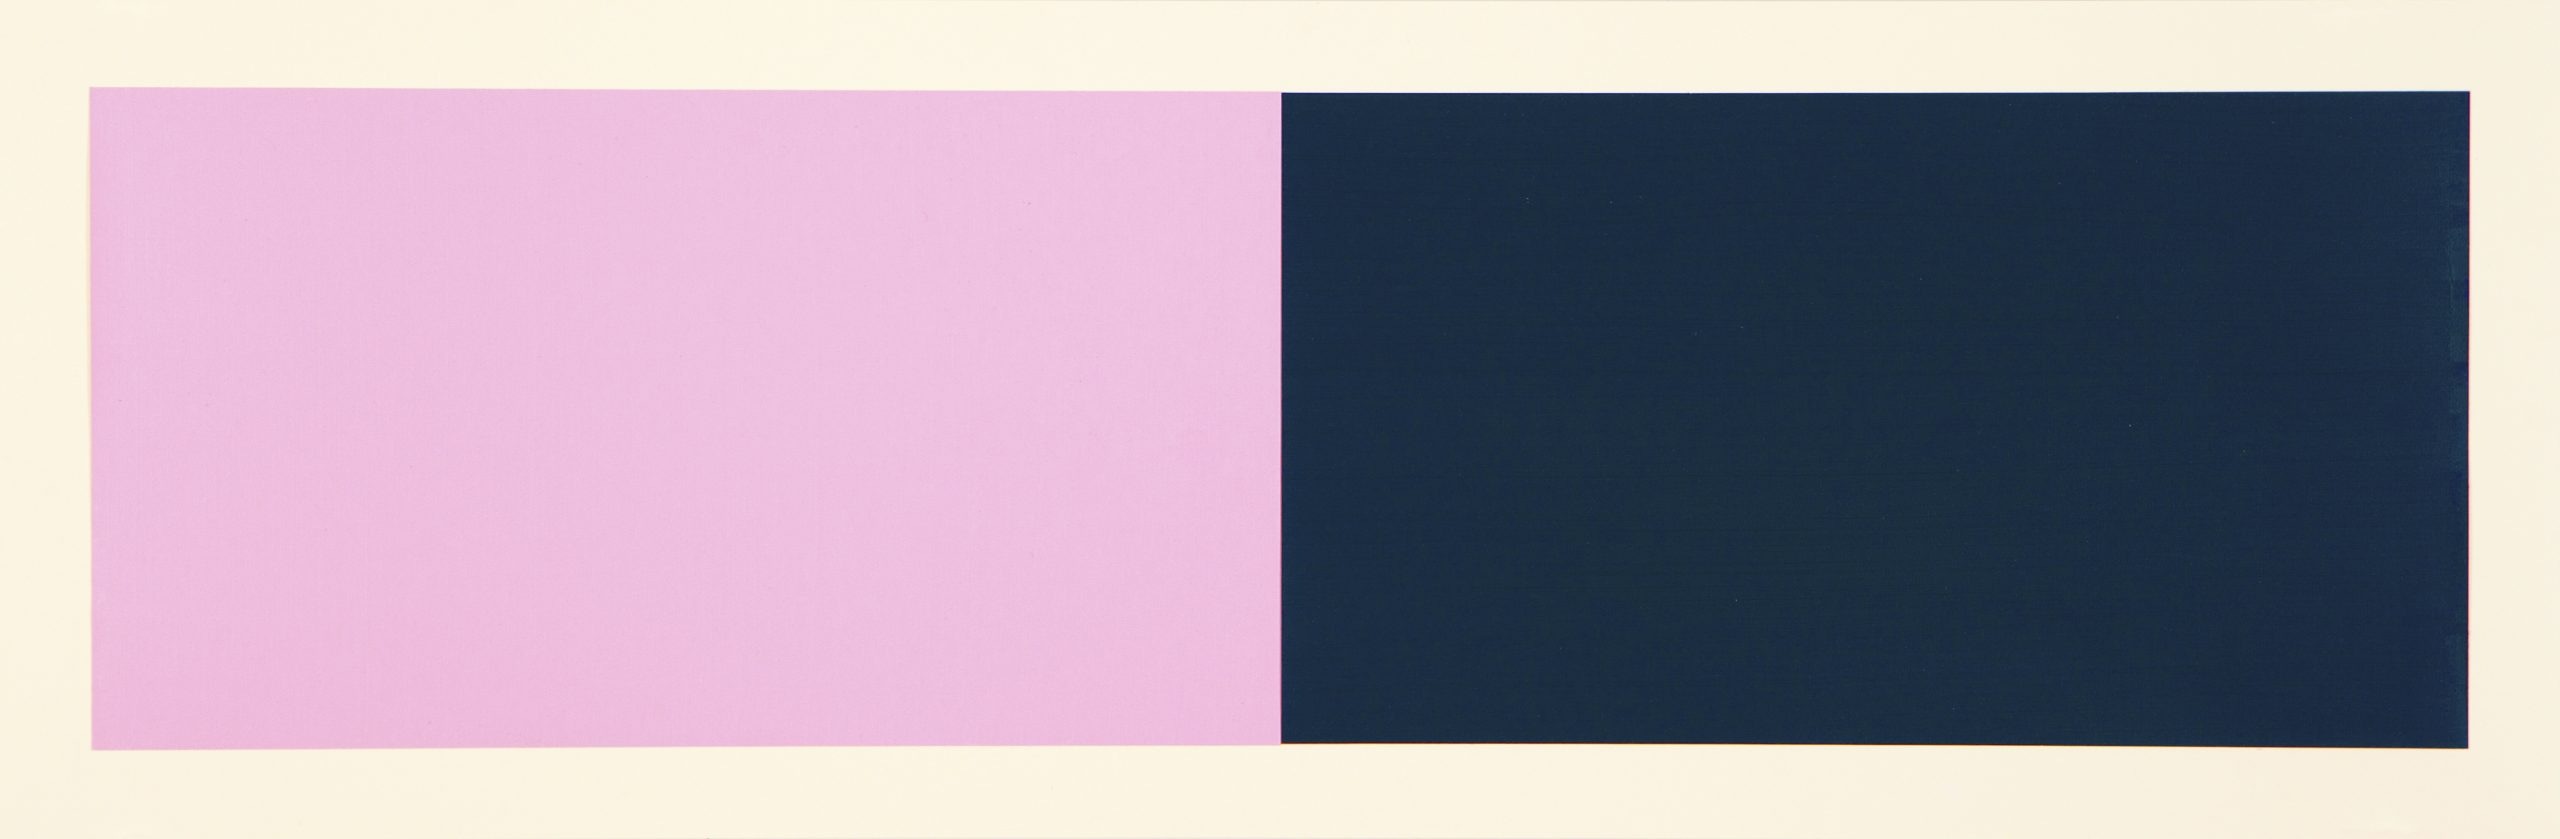 Rivers And Mountains/3, Pink/green by Rupert Deese